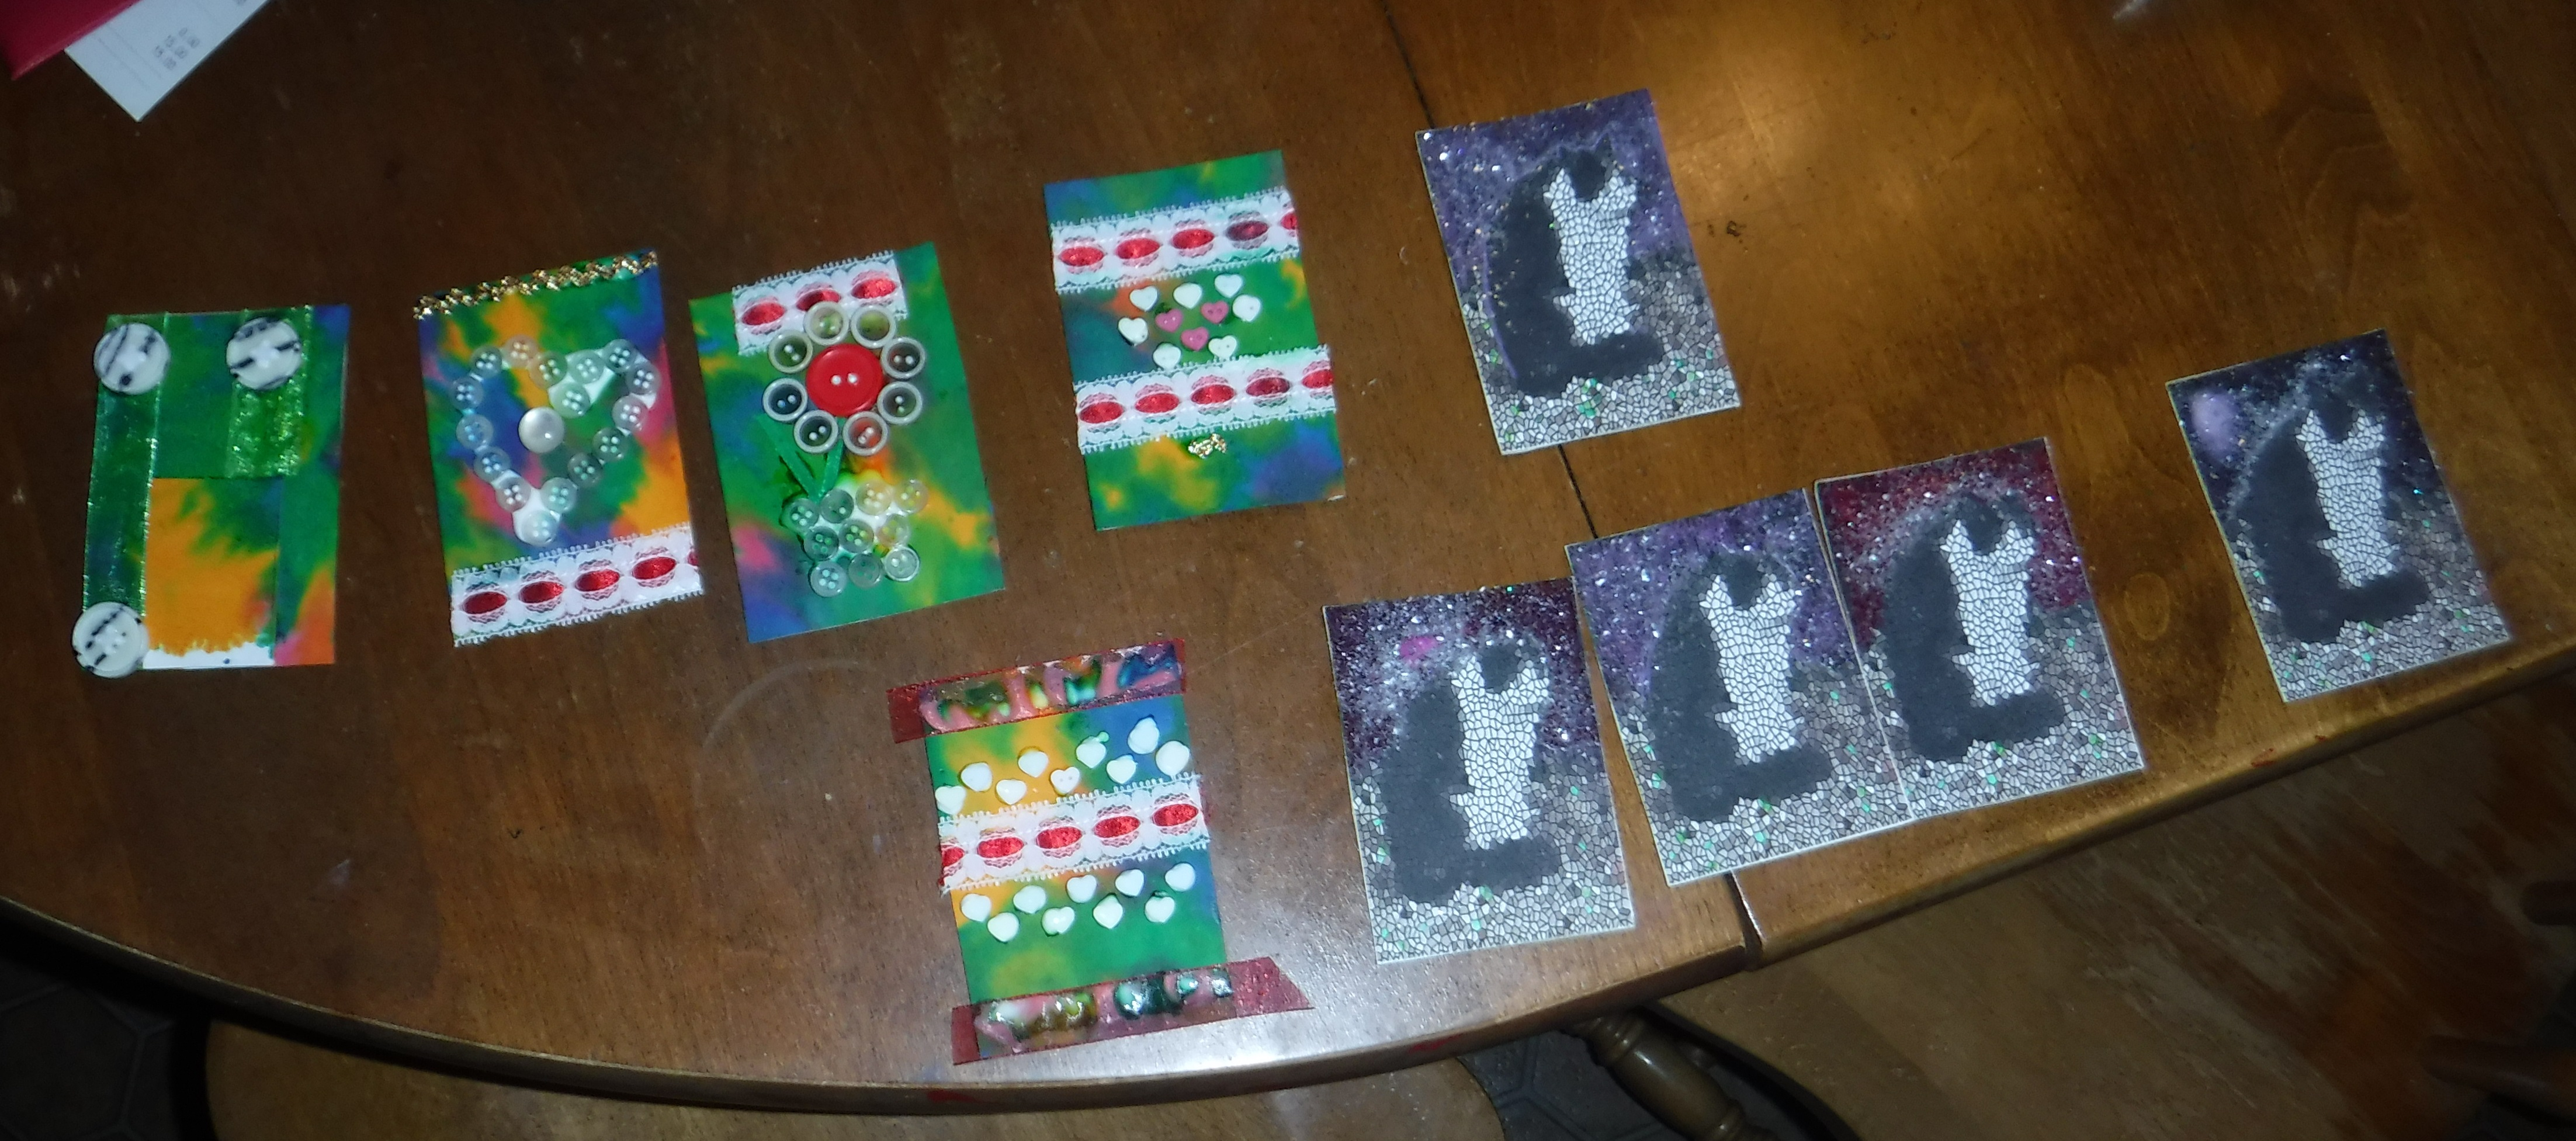 Photo I took of the Artist Trading Cards I made tonight